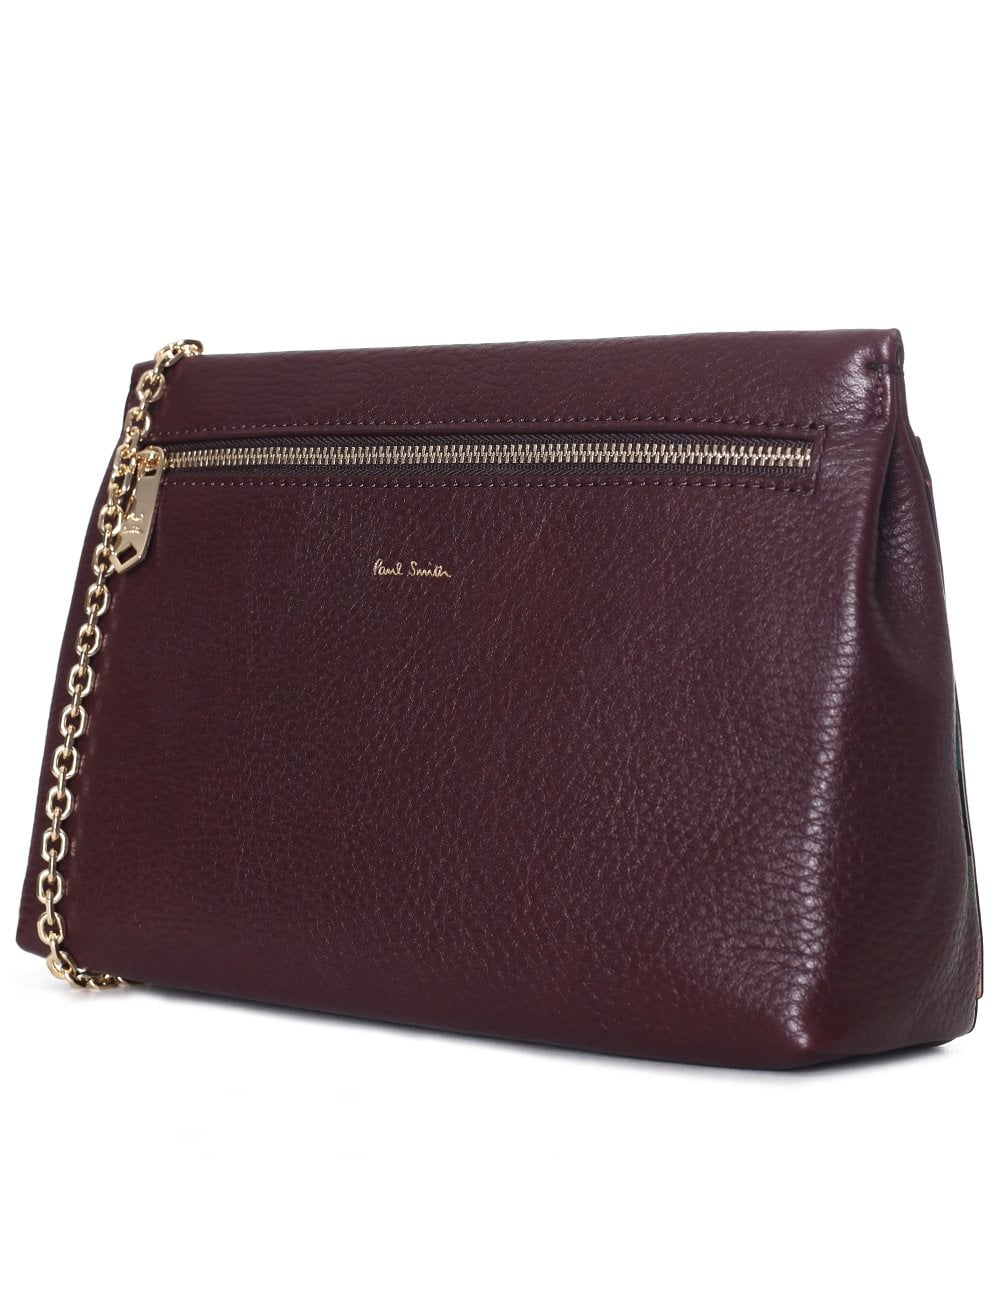 ca9b1cbe921 Paul Smith Women's Pouch Bag With Gold Chain